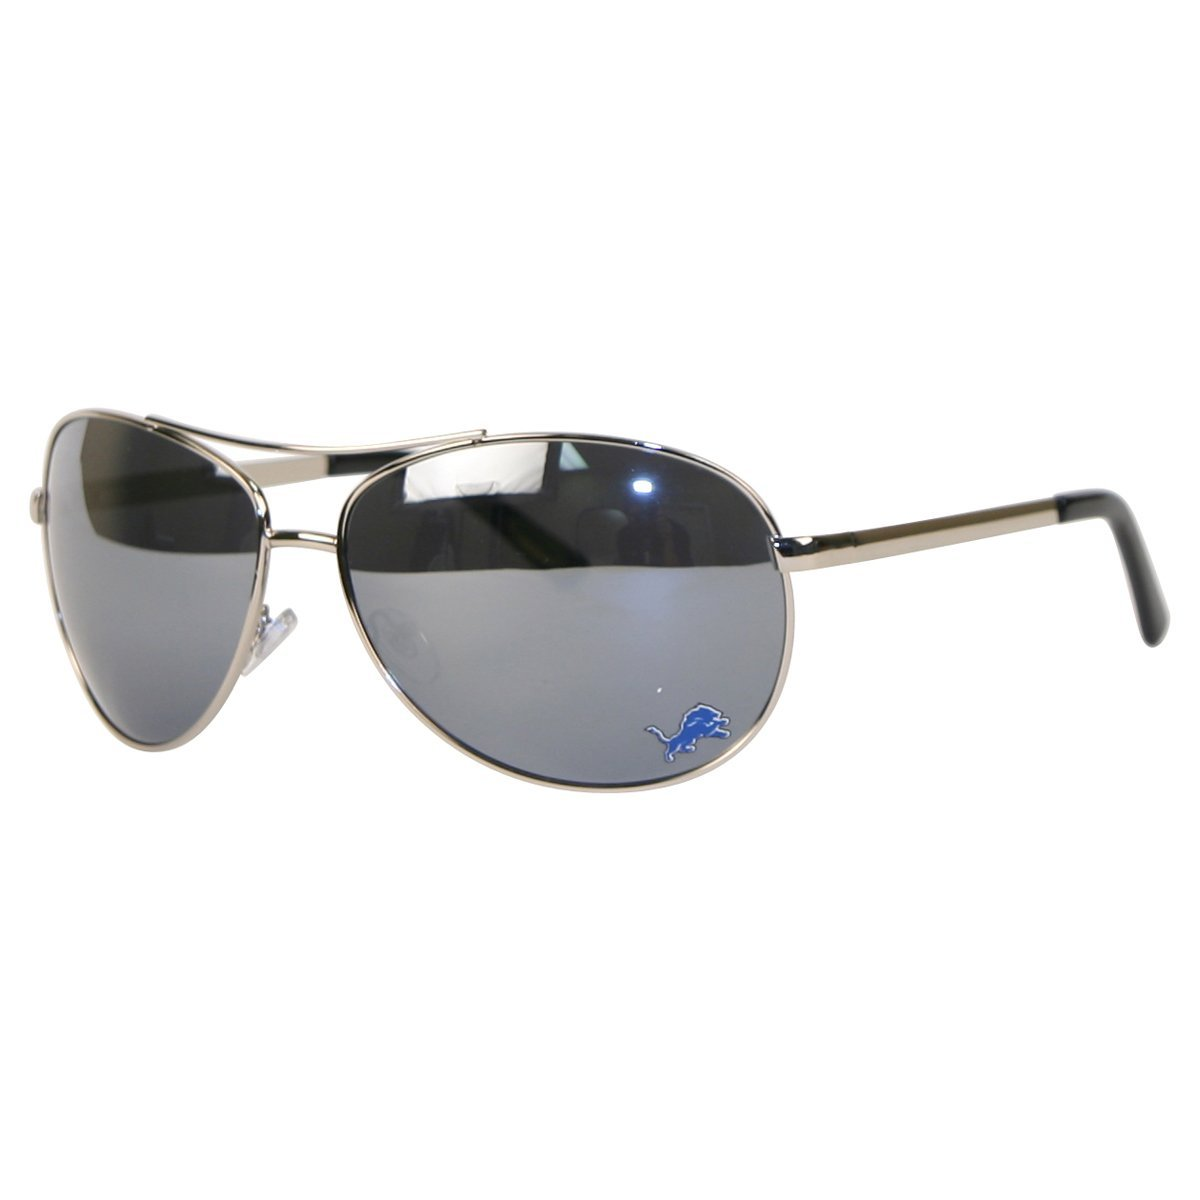 NFL Team Logo Spring Hinged Mirrored Aviator Sunglasses - Detroit Lions